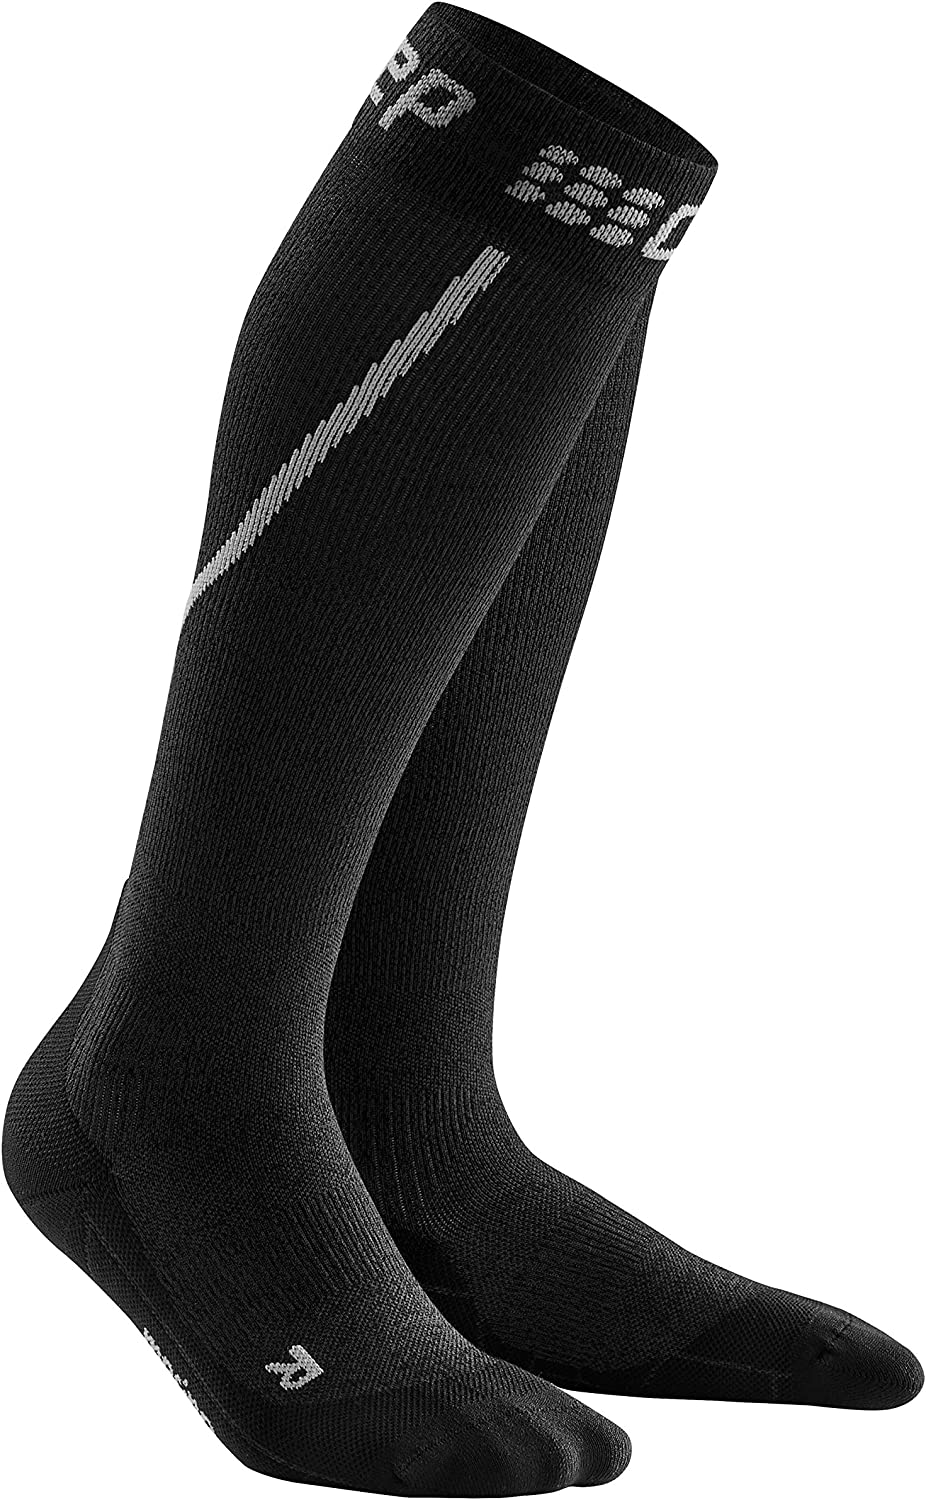 Mens Long Compression Max 43% OFF Wool High material Sock - CEP Trail Grey Black Merino